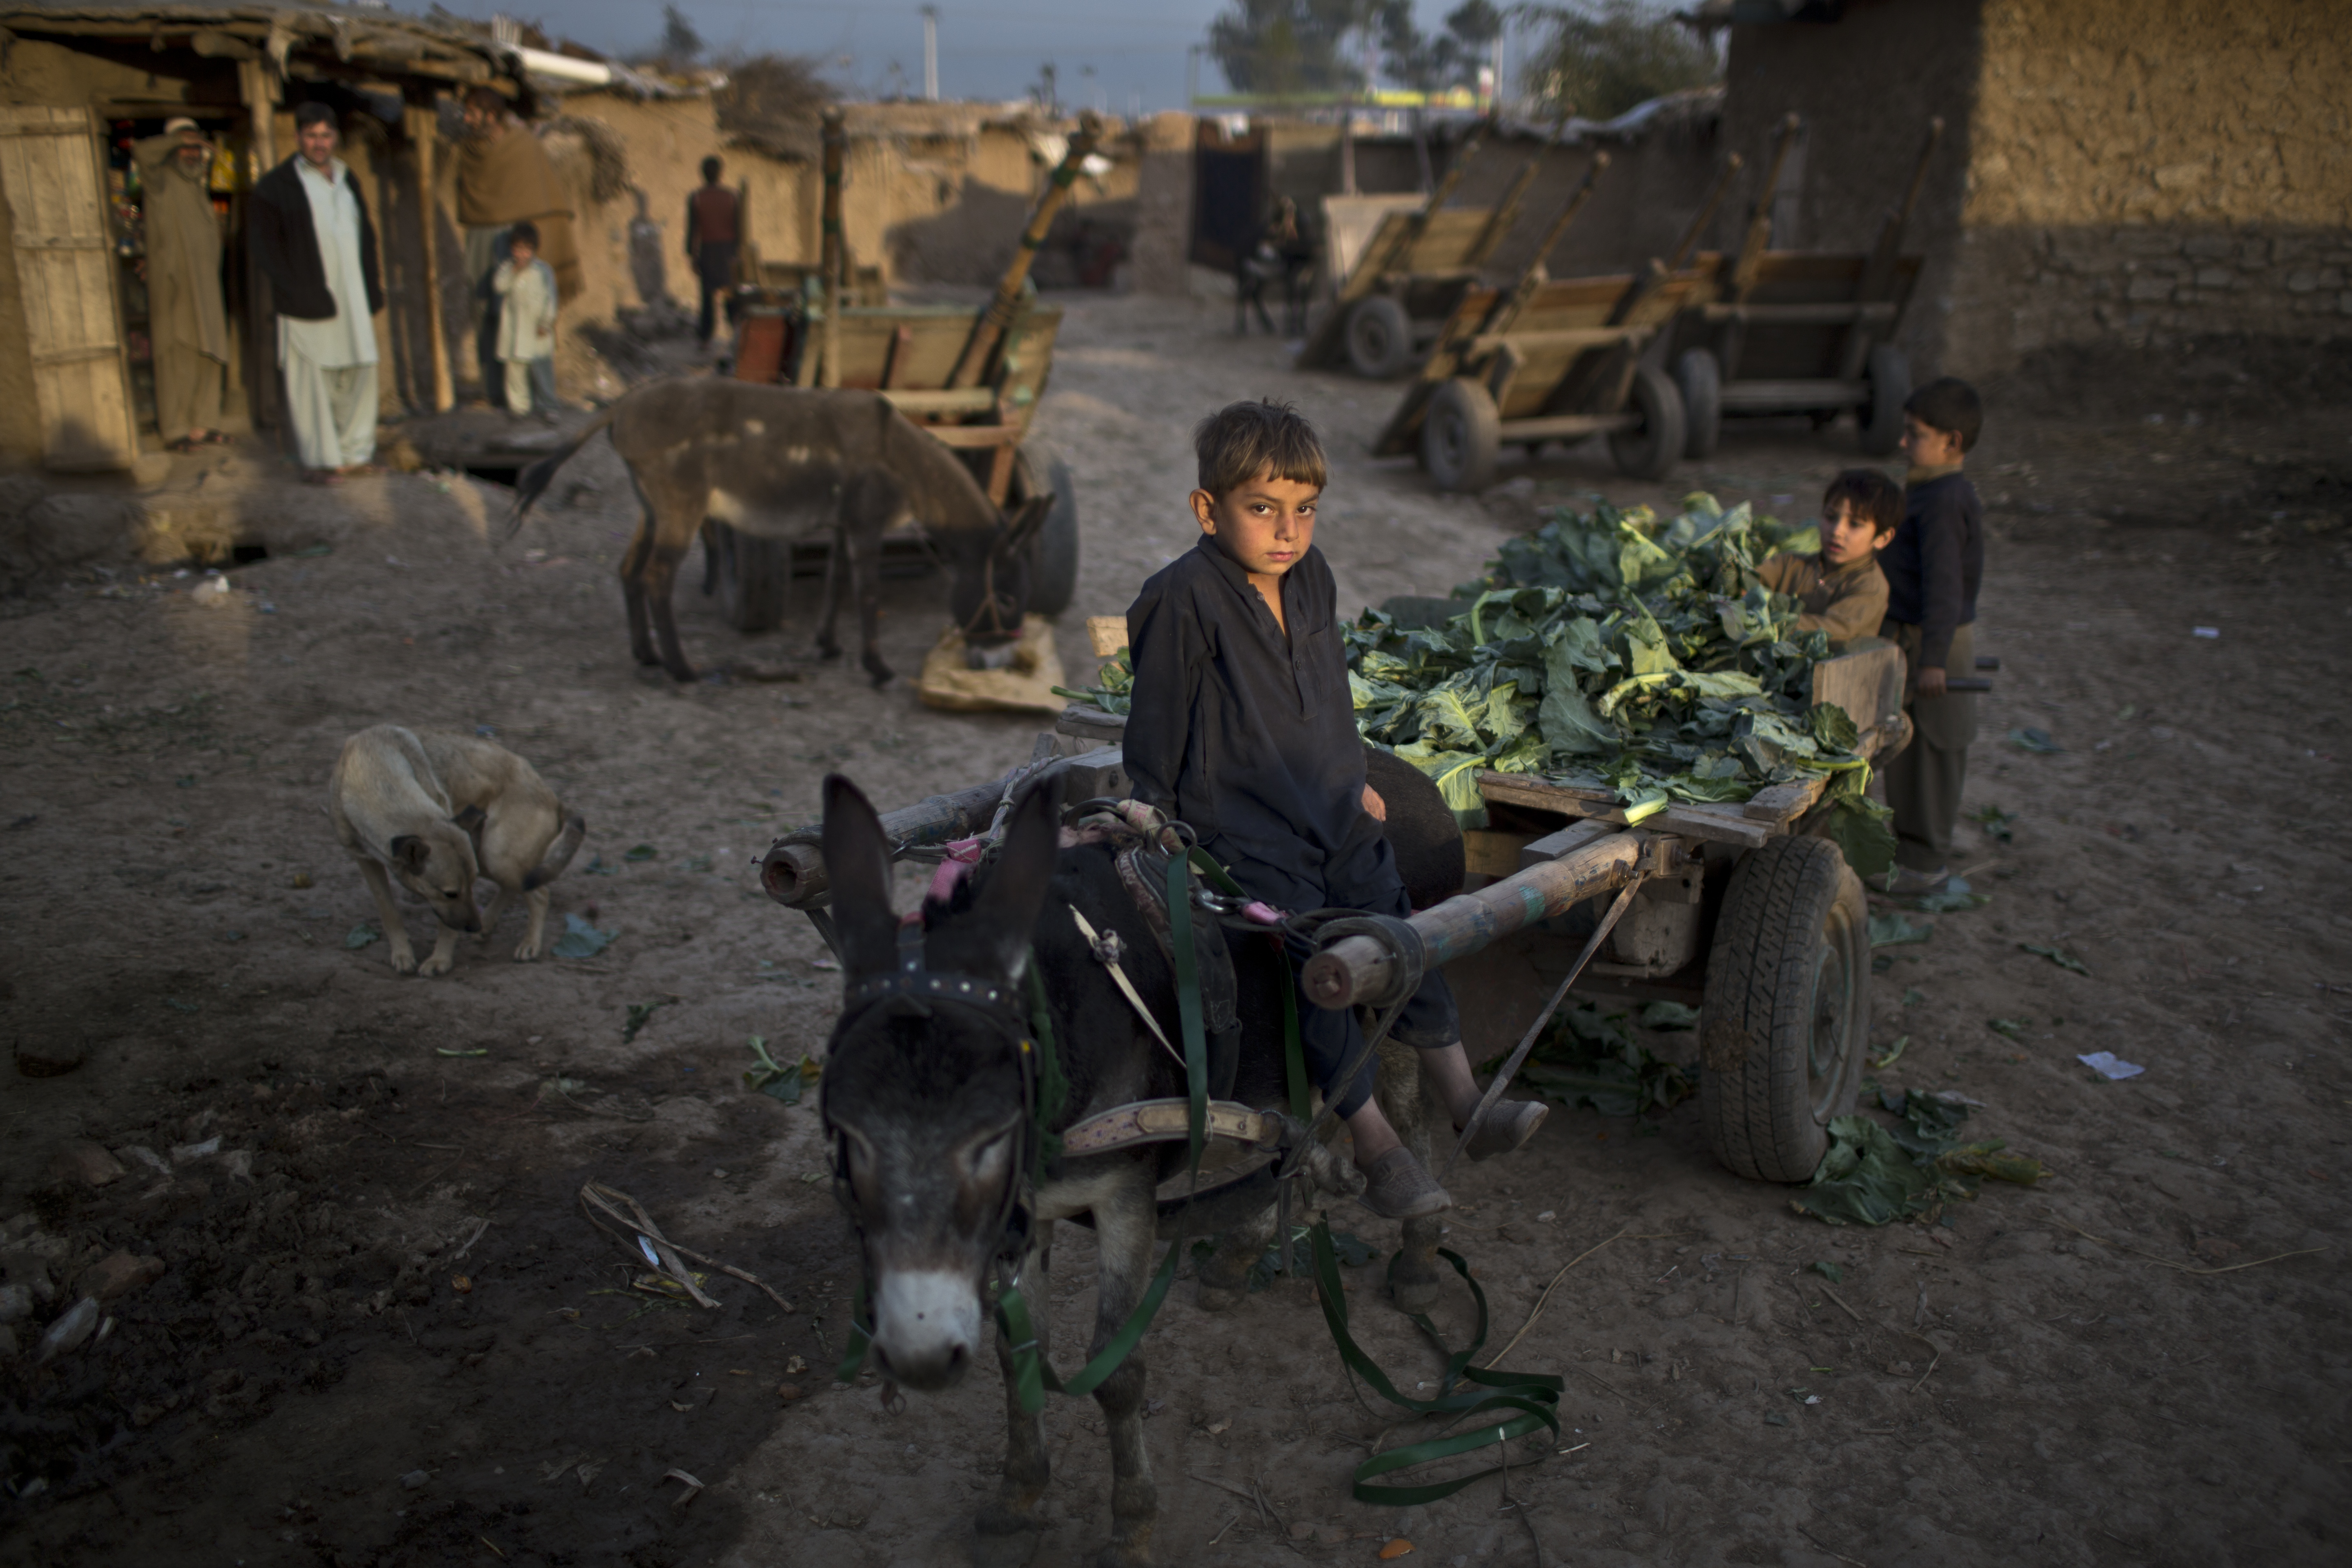 FILE - An Afghan refugee boy sits on a donkey attached with a cart loaded with vegetable leaves collected off the ground of a near by market, in a slum on the outskirts of Islamabad, Pakistan, Feb. 10, 2015.